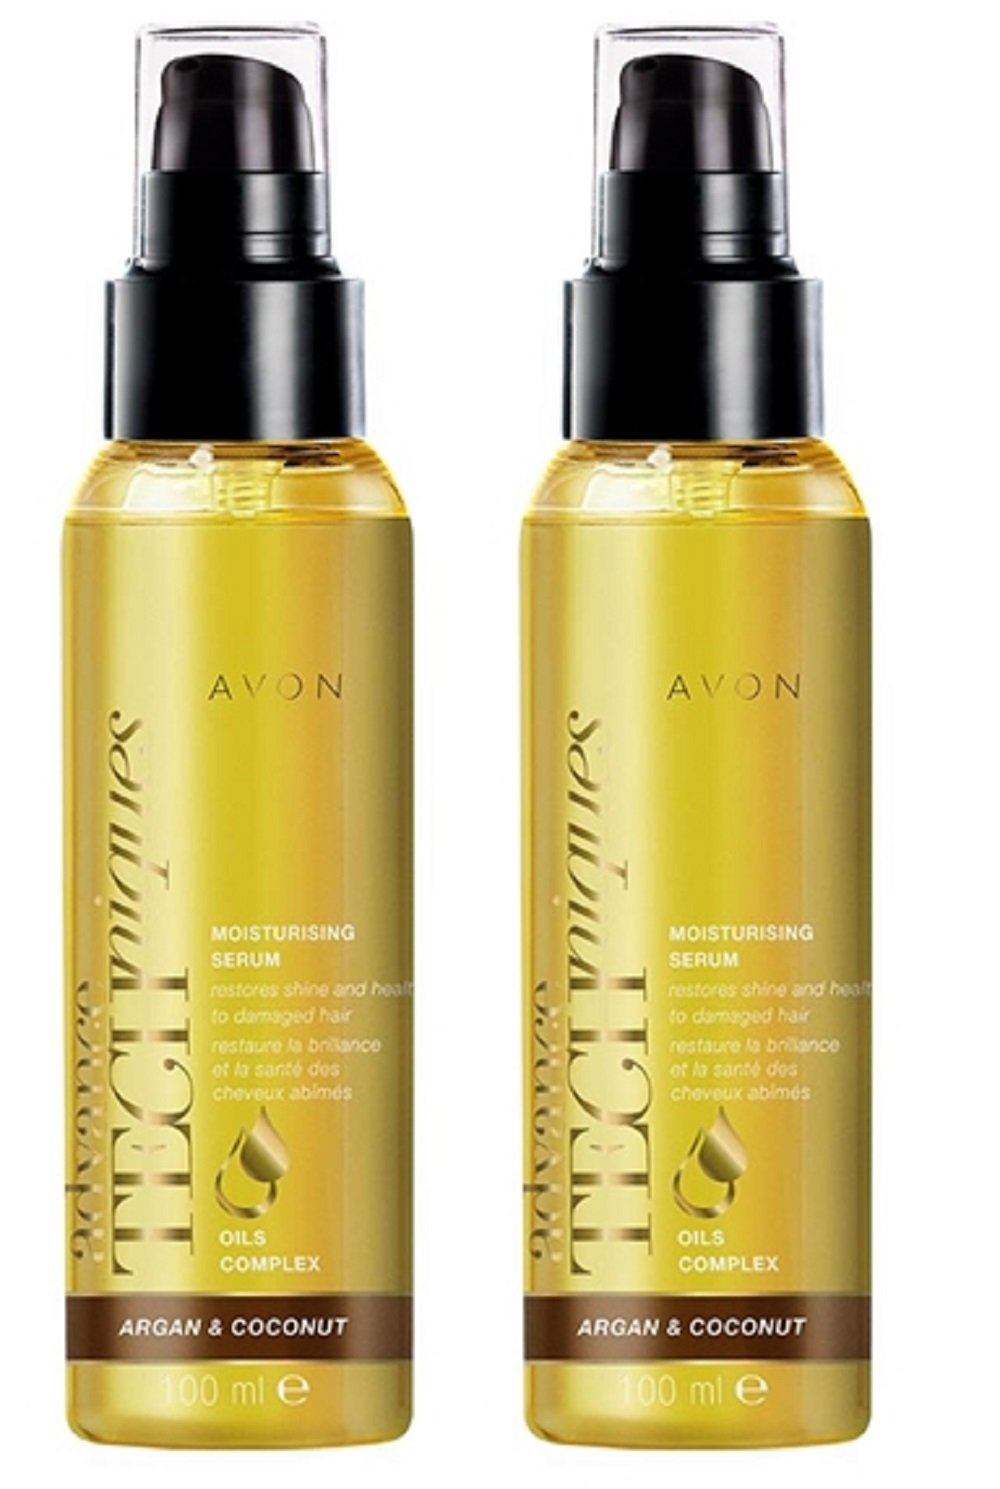 2 x Advance Techniques Argan & Coconut Oil Moisturising Serum – 100ml Avon